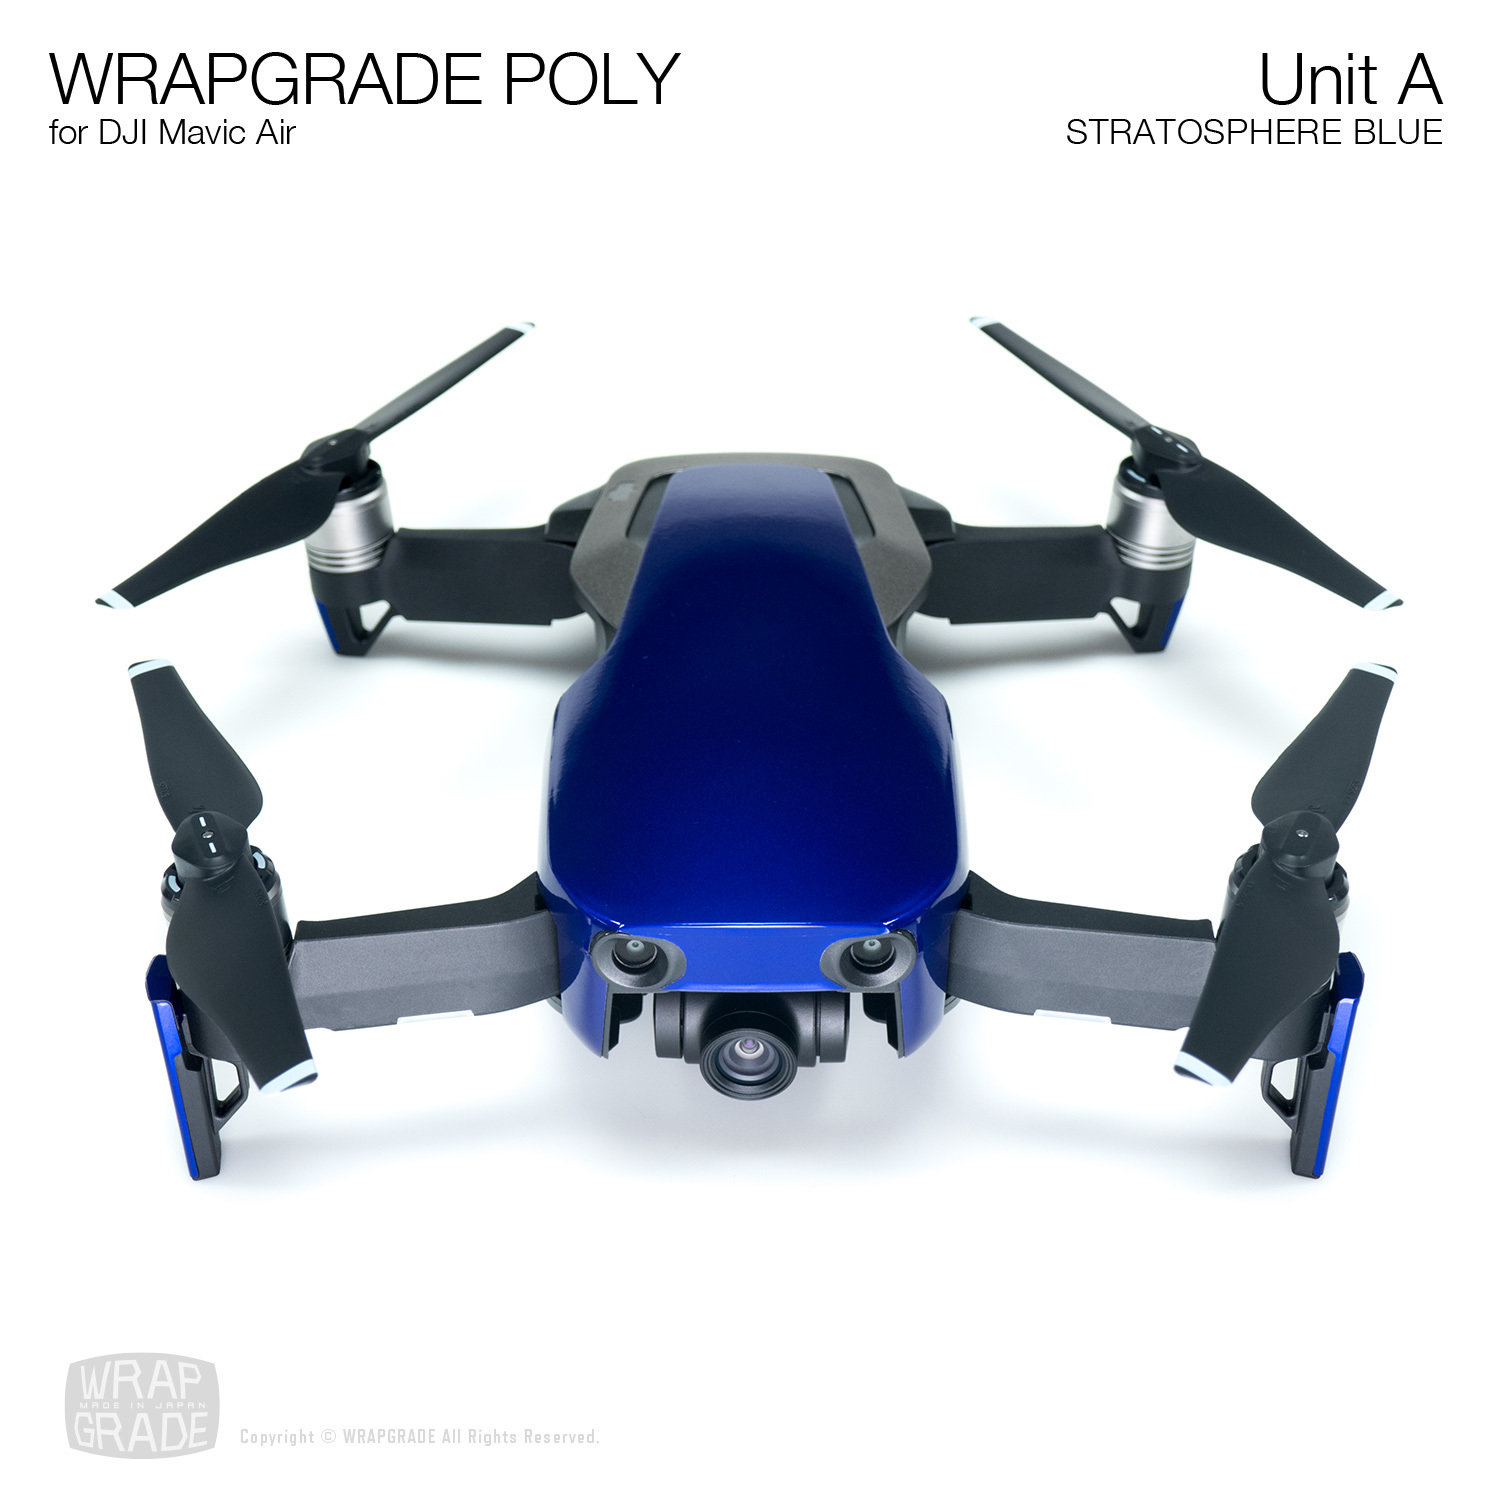 Wrapgrade Poly Skin for DJI Mavic Air | Unit A (STRATOSPHERE BLUE)